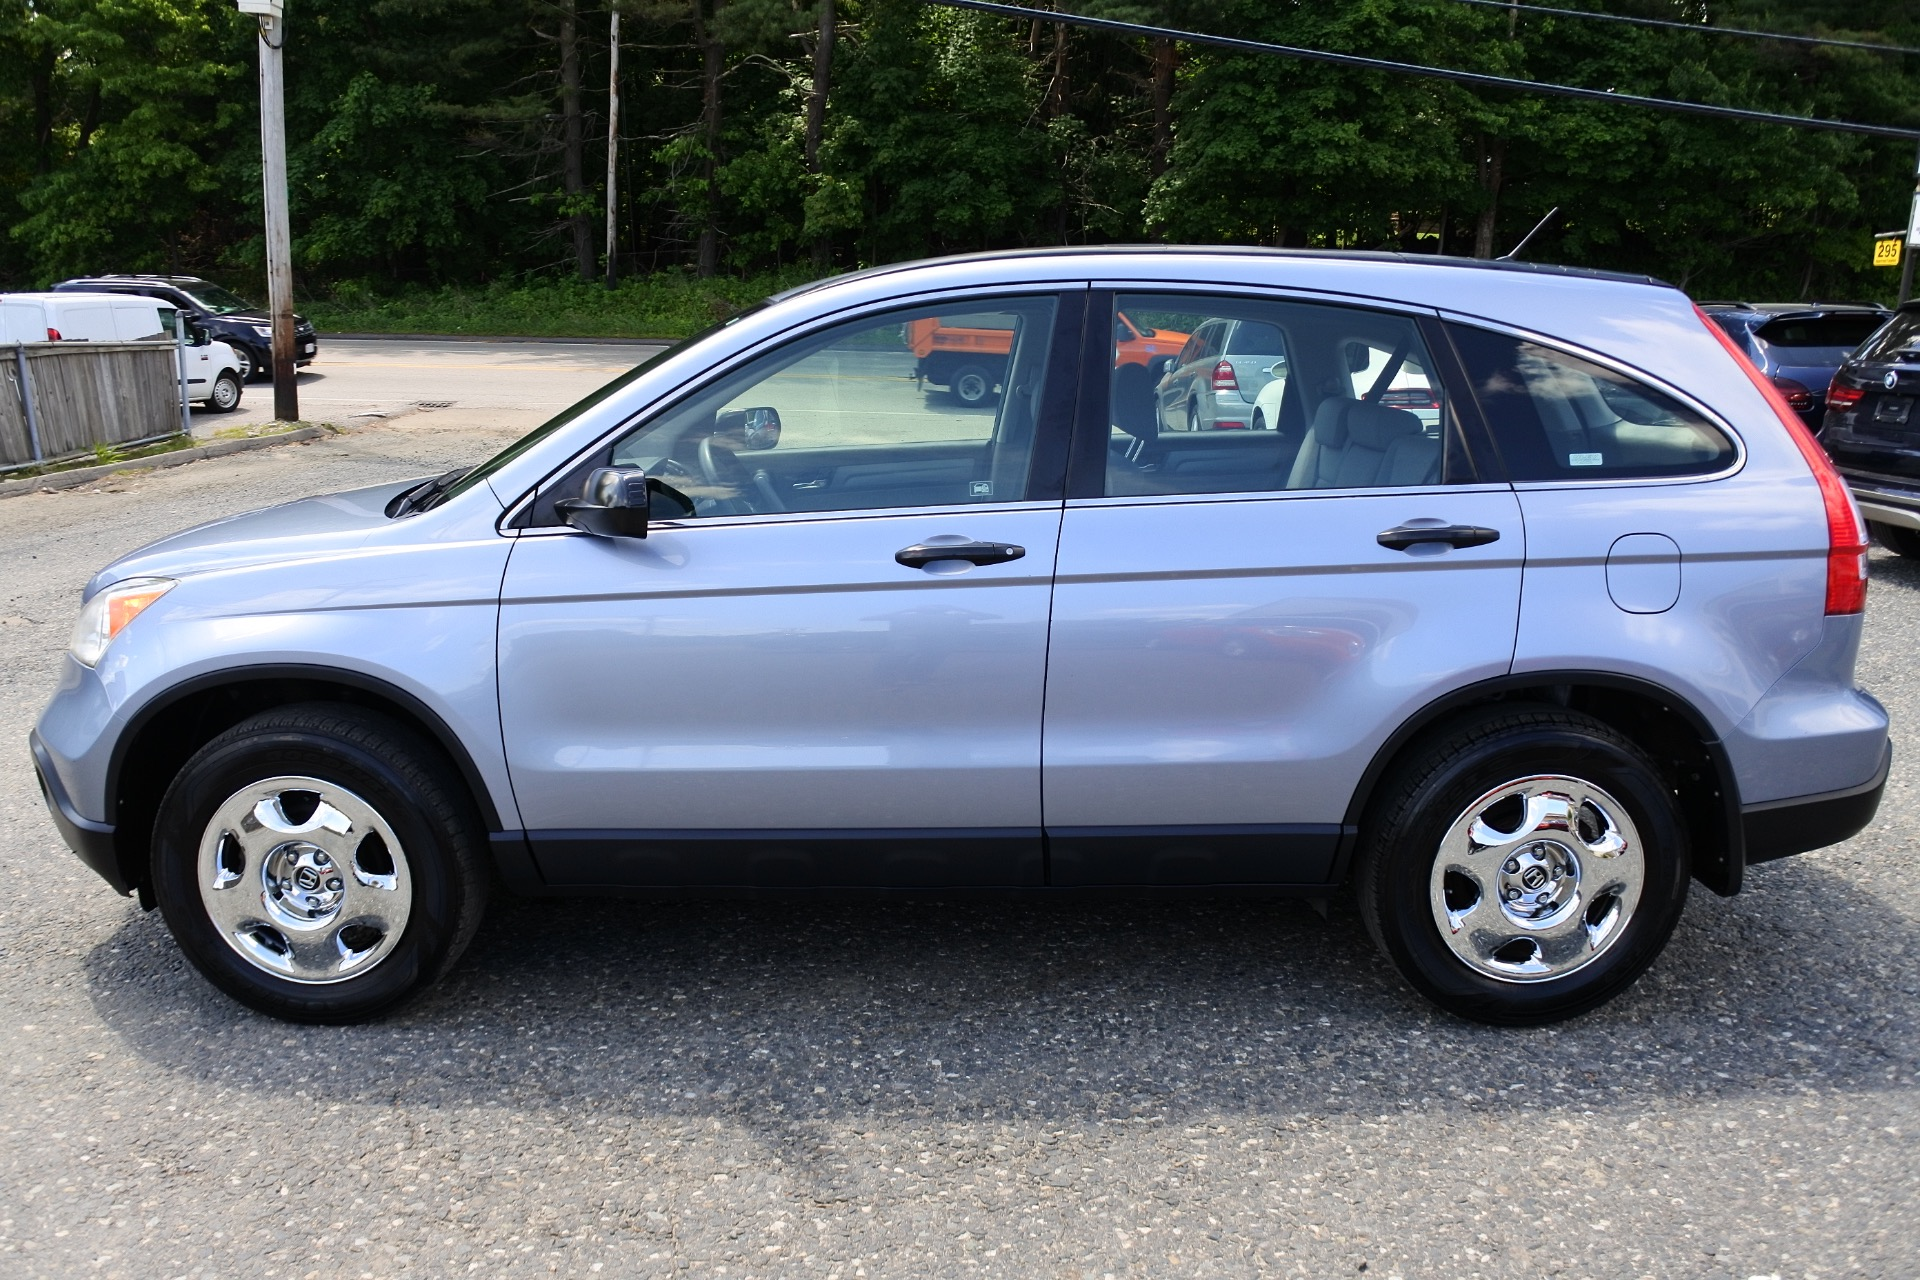 Used 2008 Honda Cr-v 4WD 5dr LX Used 2008 Honda Cr-v 4WD 5dr LX for sale  at Metro West Motorcars LLC in Shrewsbury MA 2